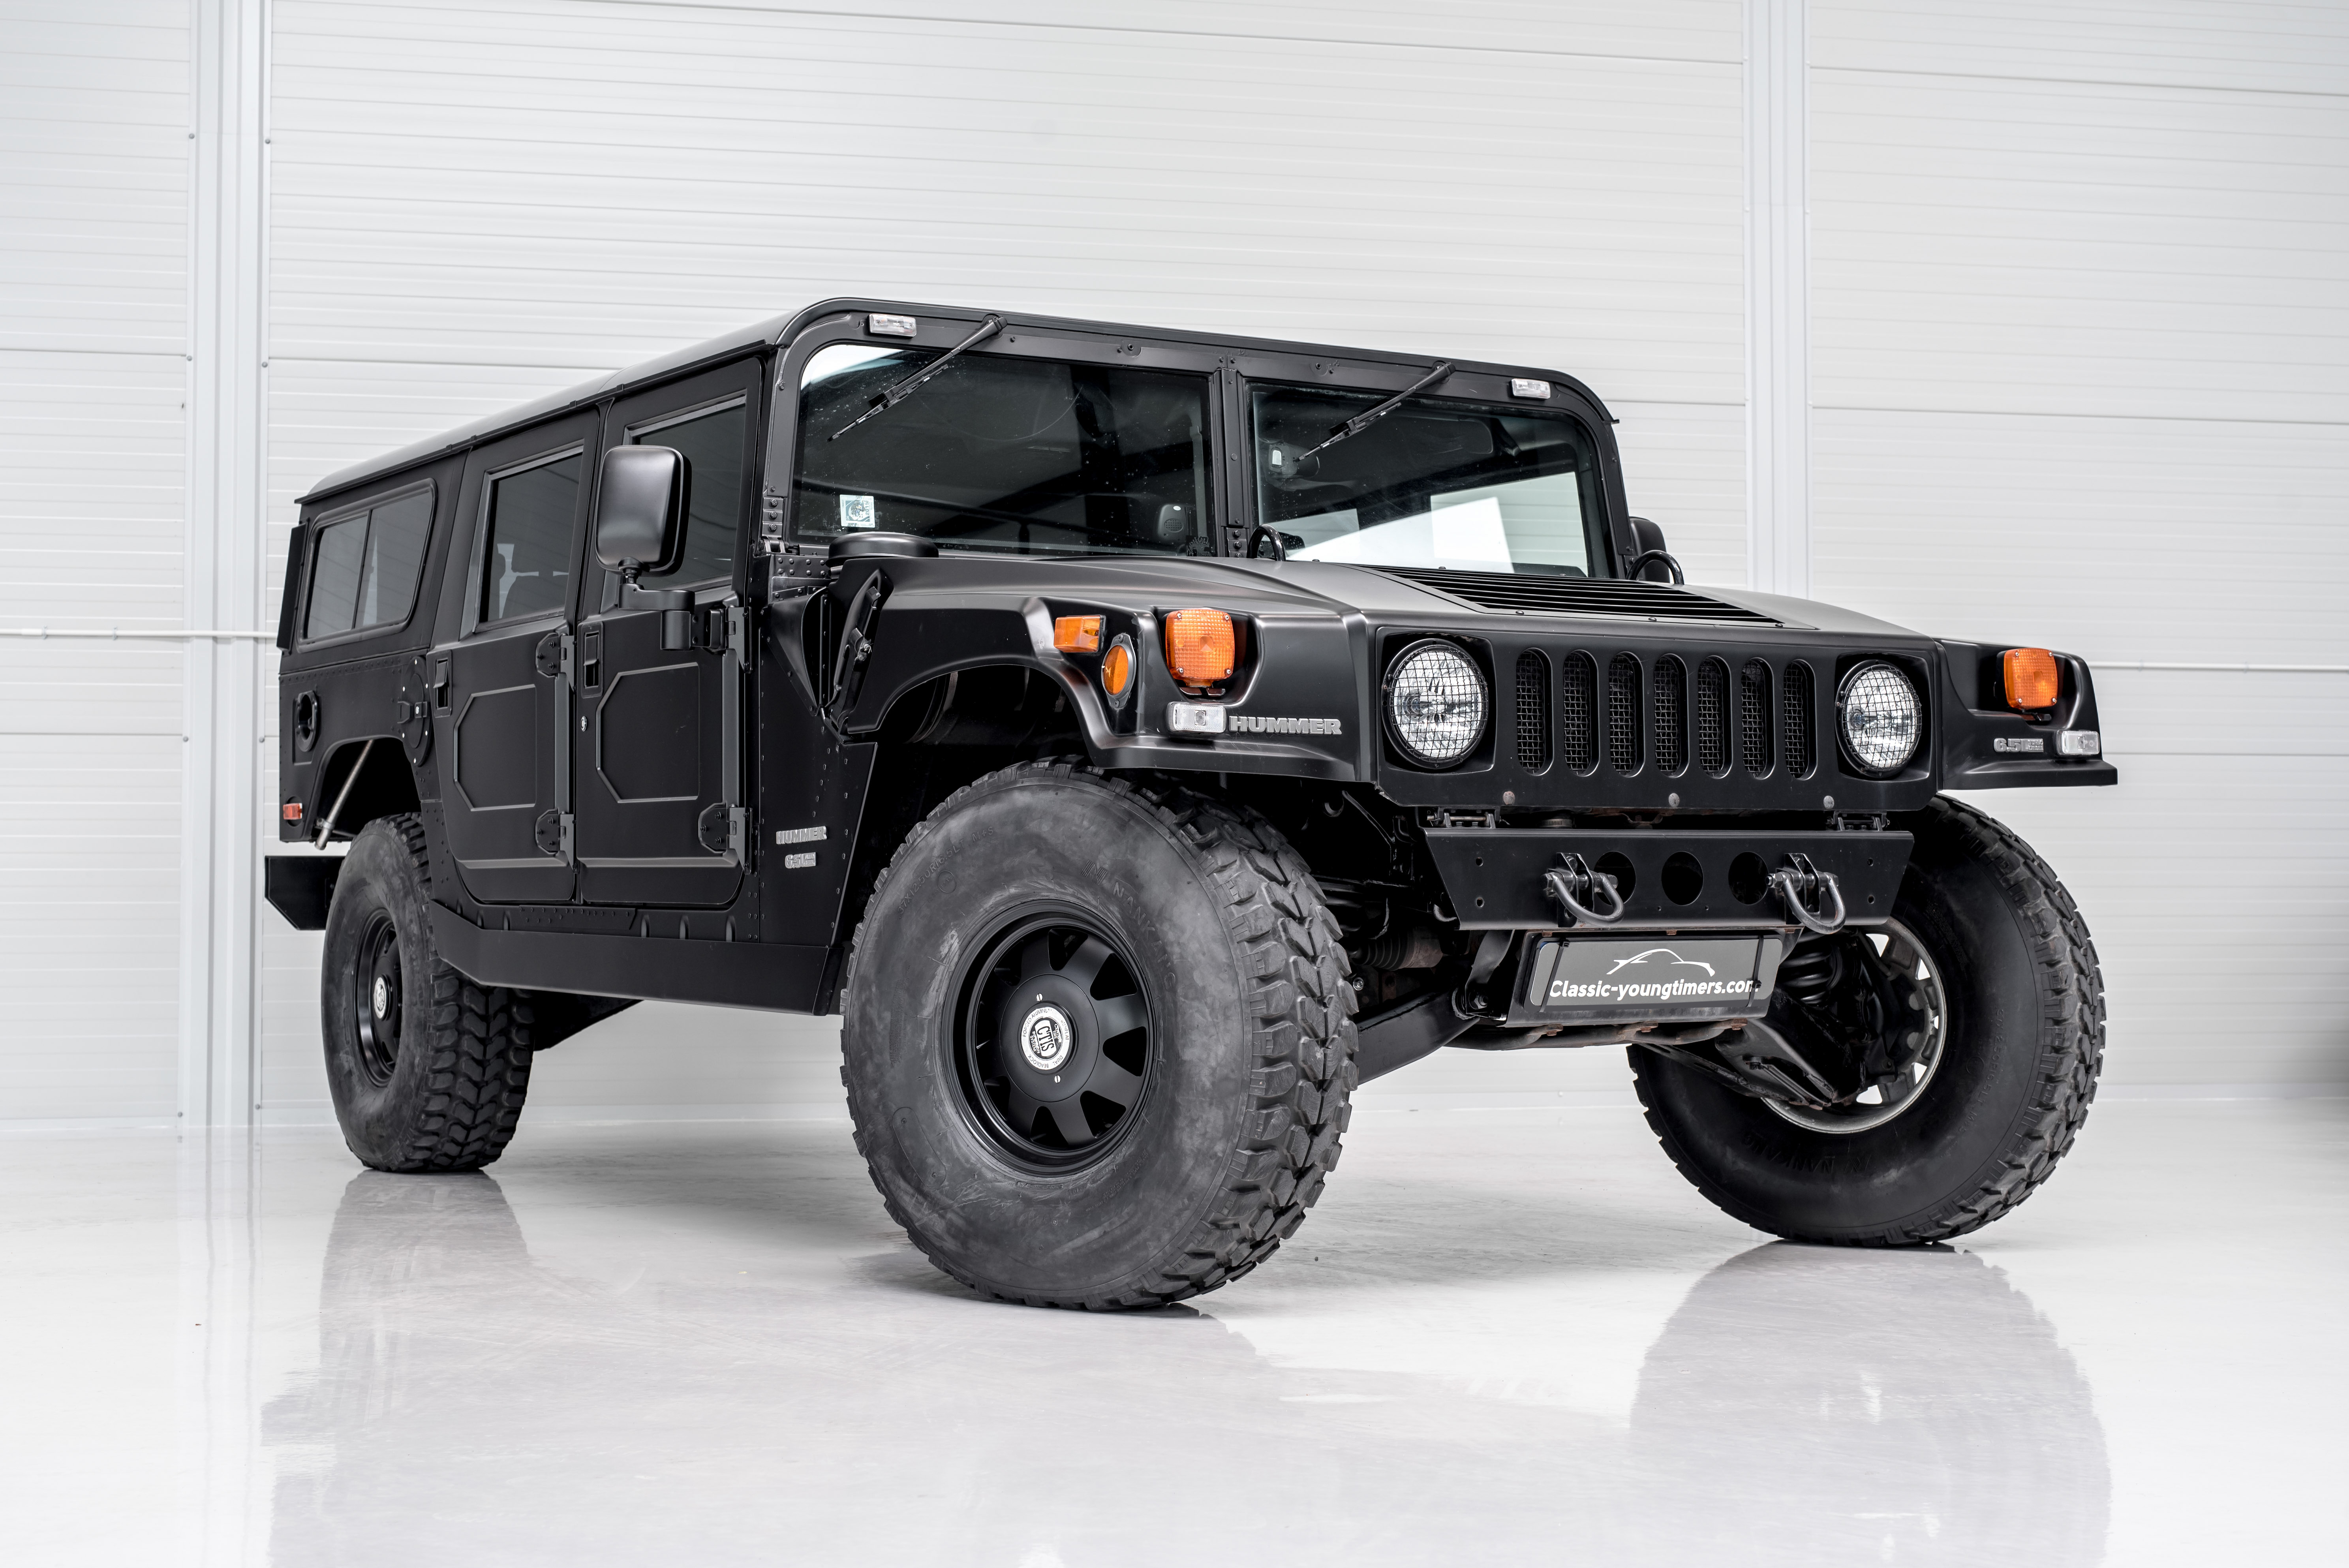 Hummer H1 4 Door Wagon 6 5L V8 Turbo Diesel classic youngtimers